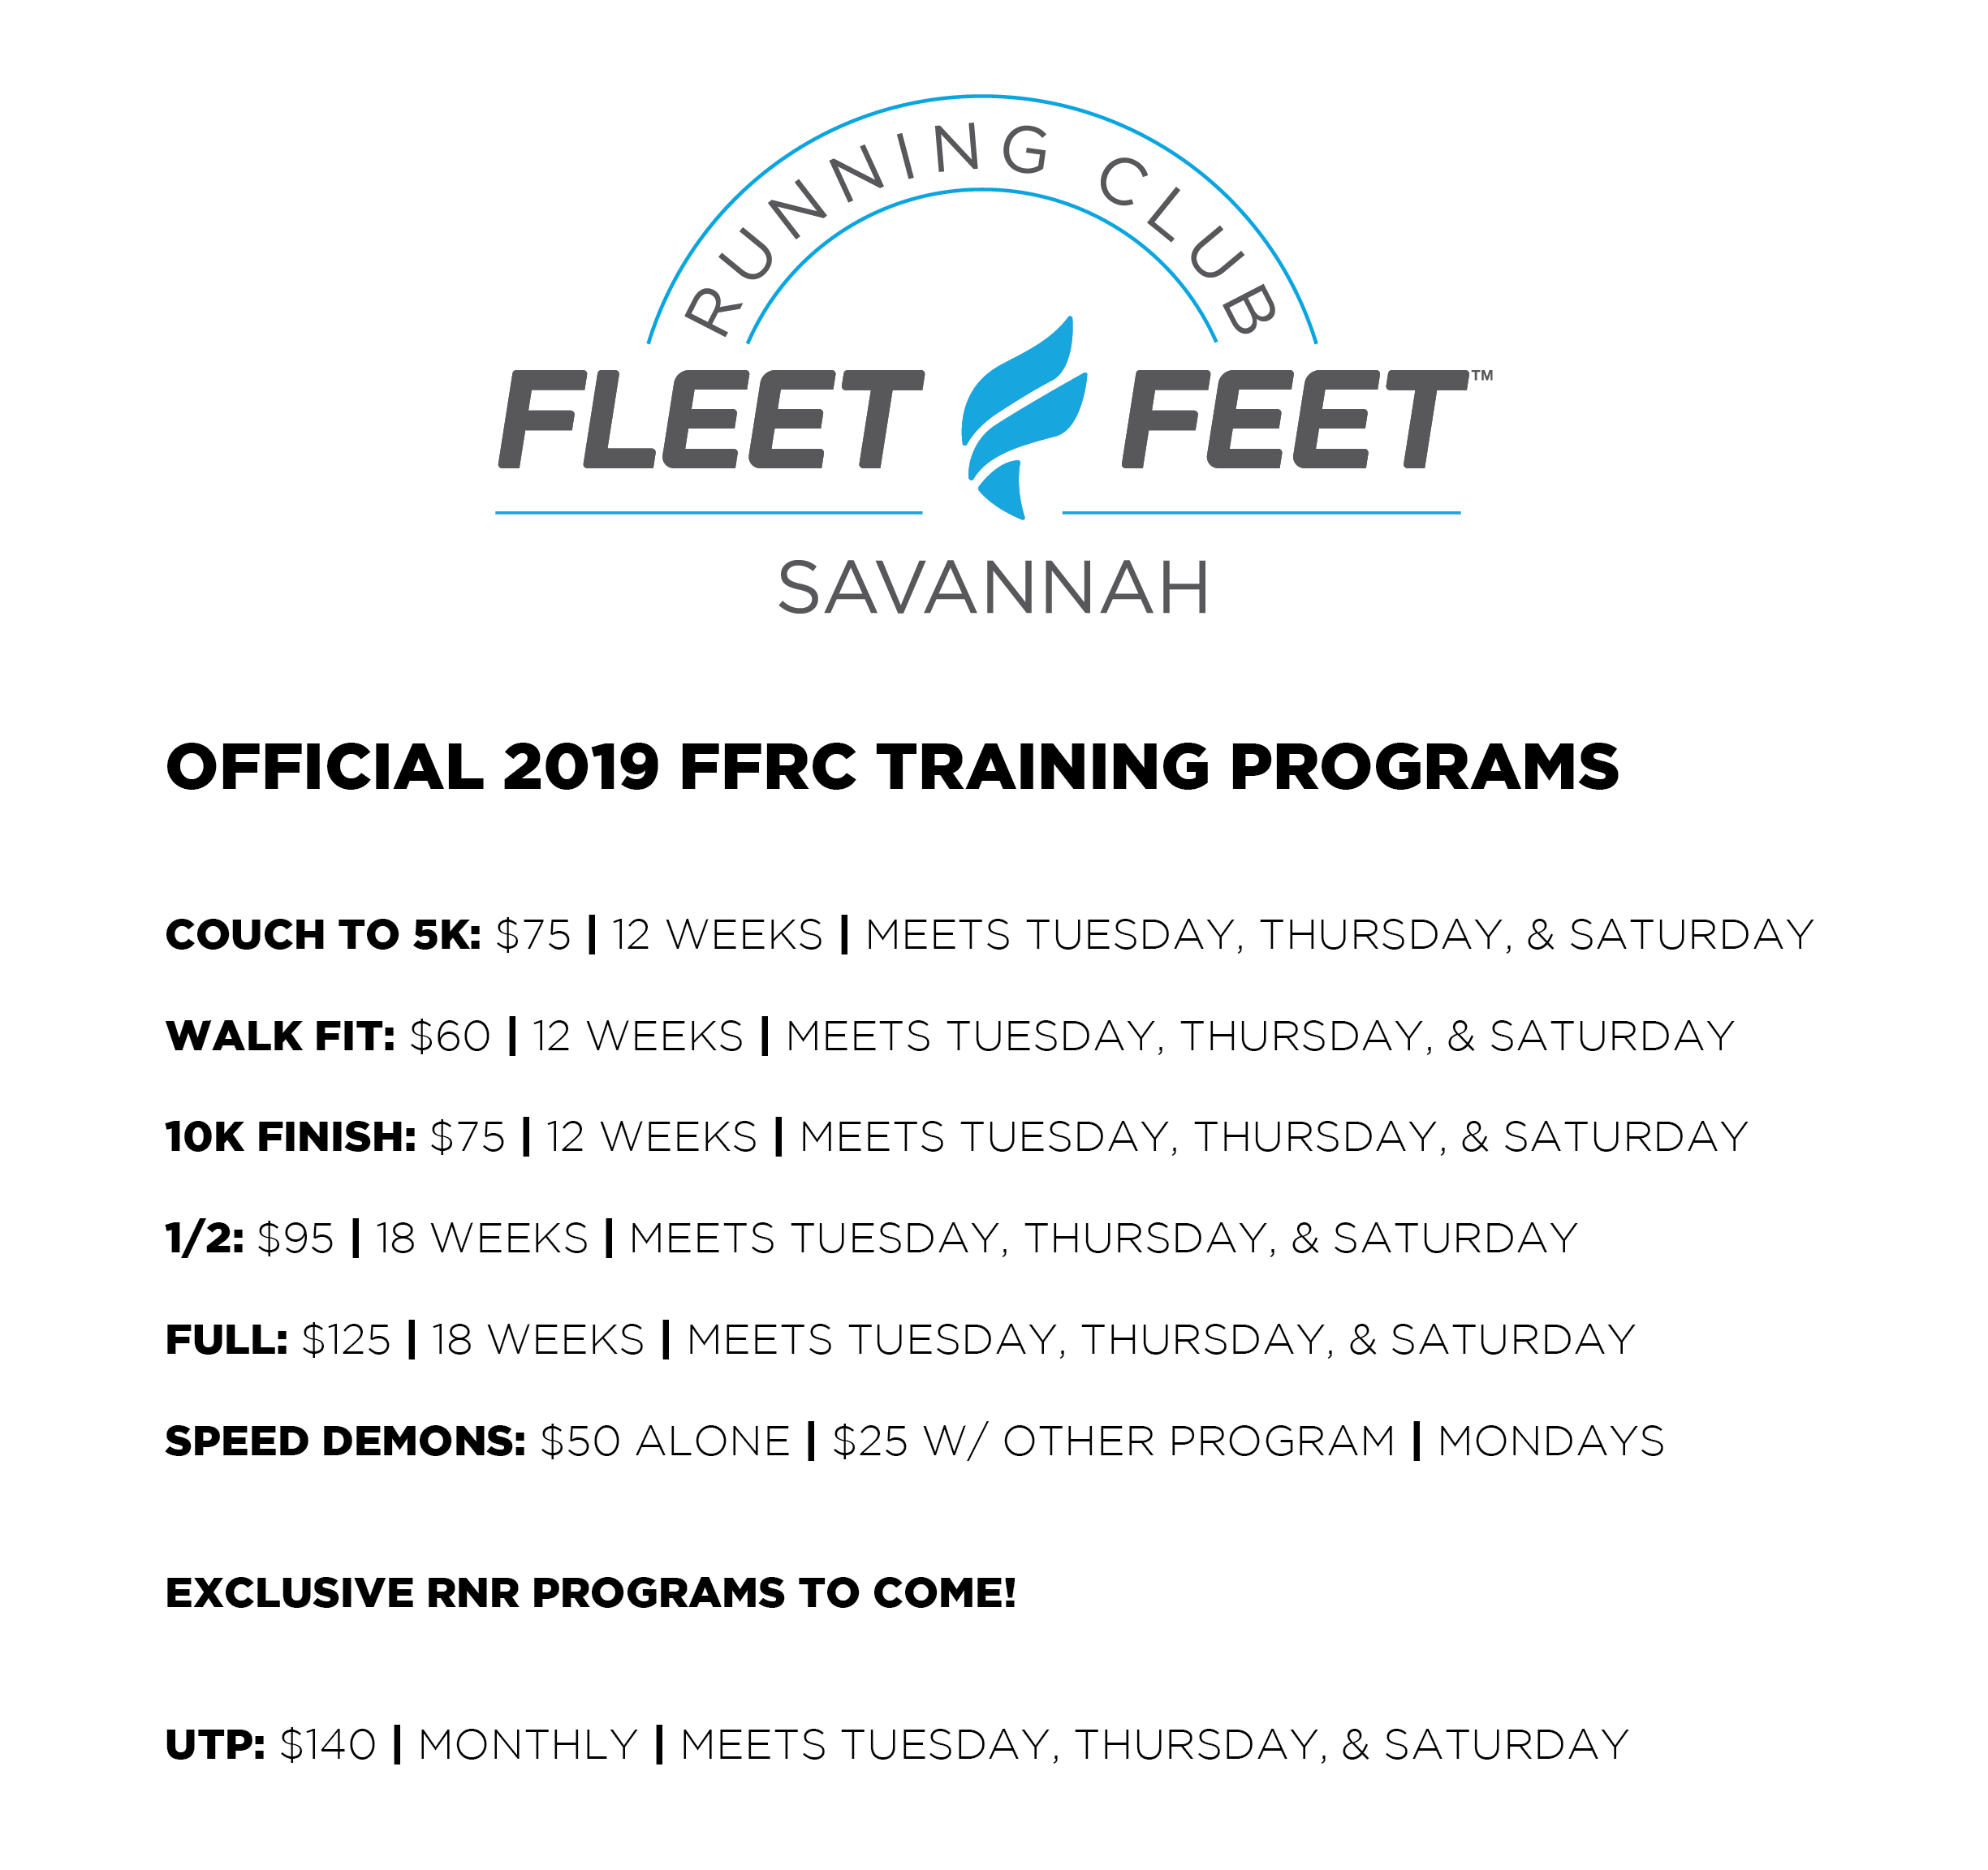 2019 FFRC TRAINING PROGRAMS